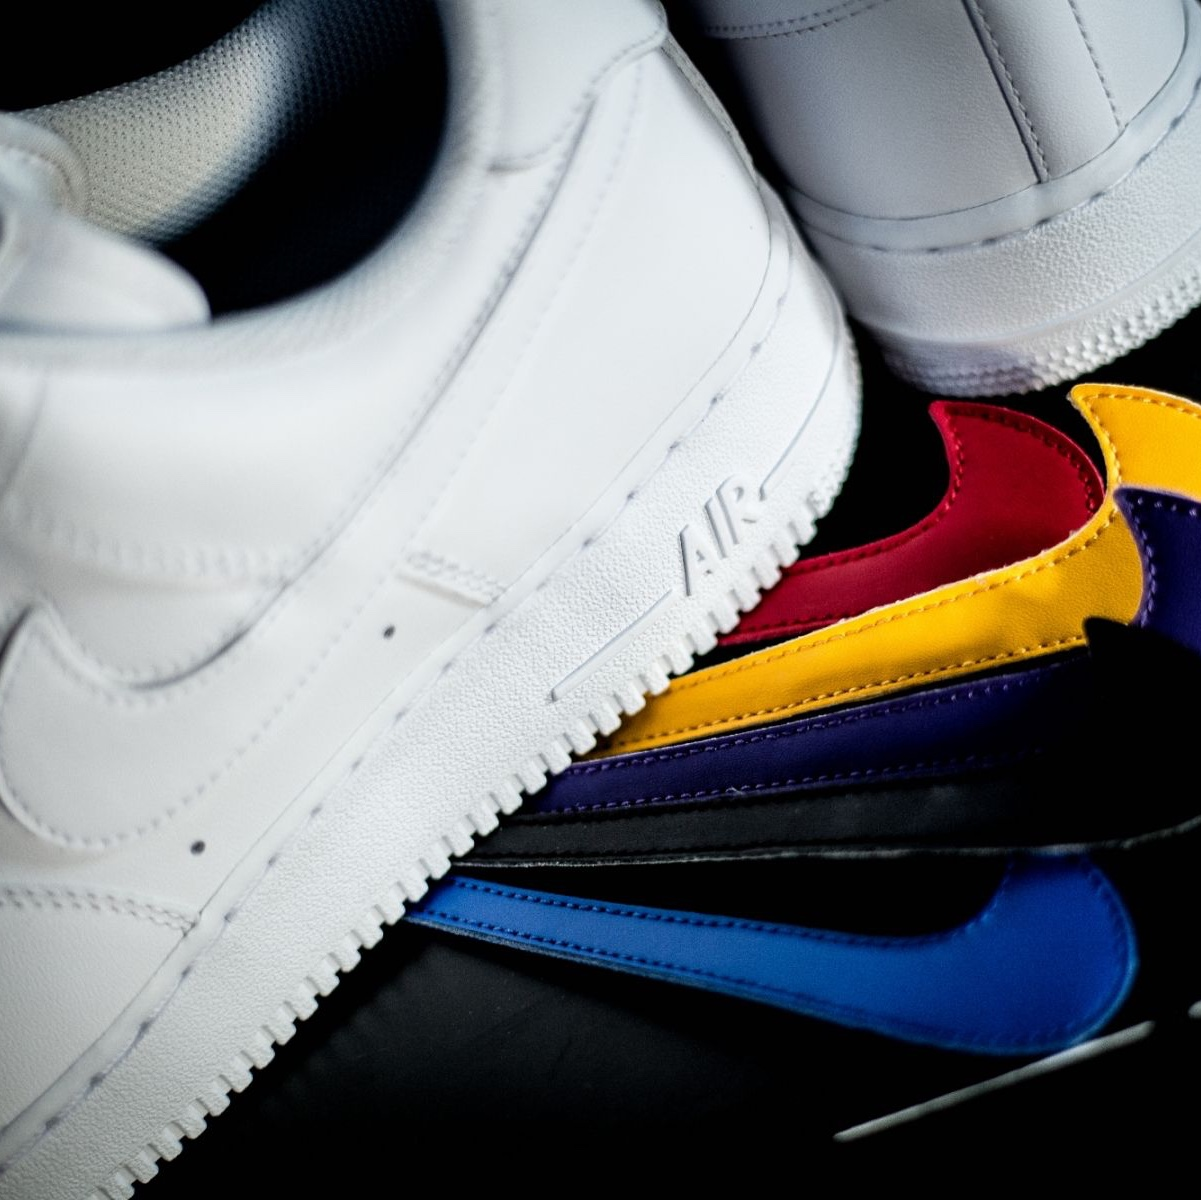 Nike Air Force 1 '07 QS Swoosh Pack White With Depop